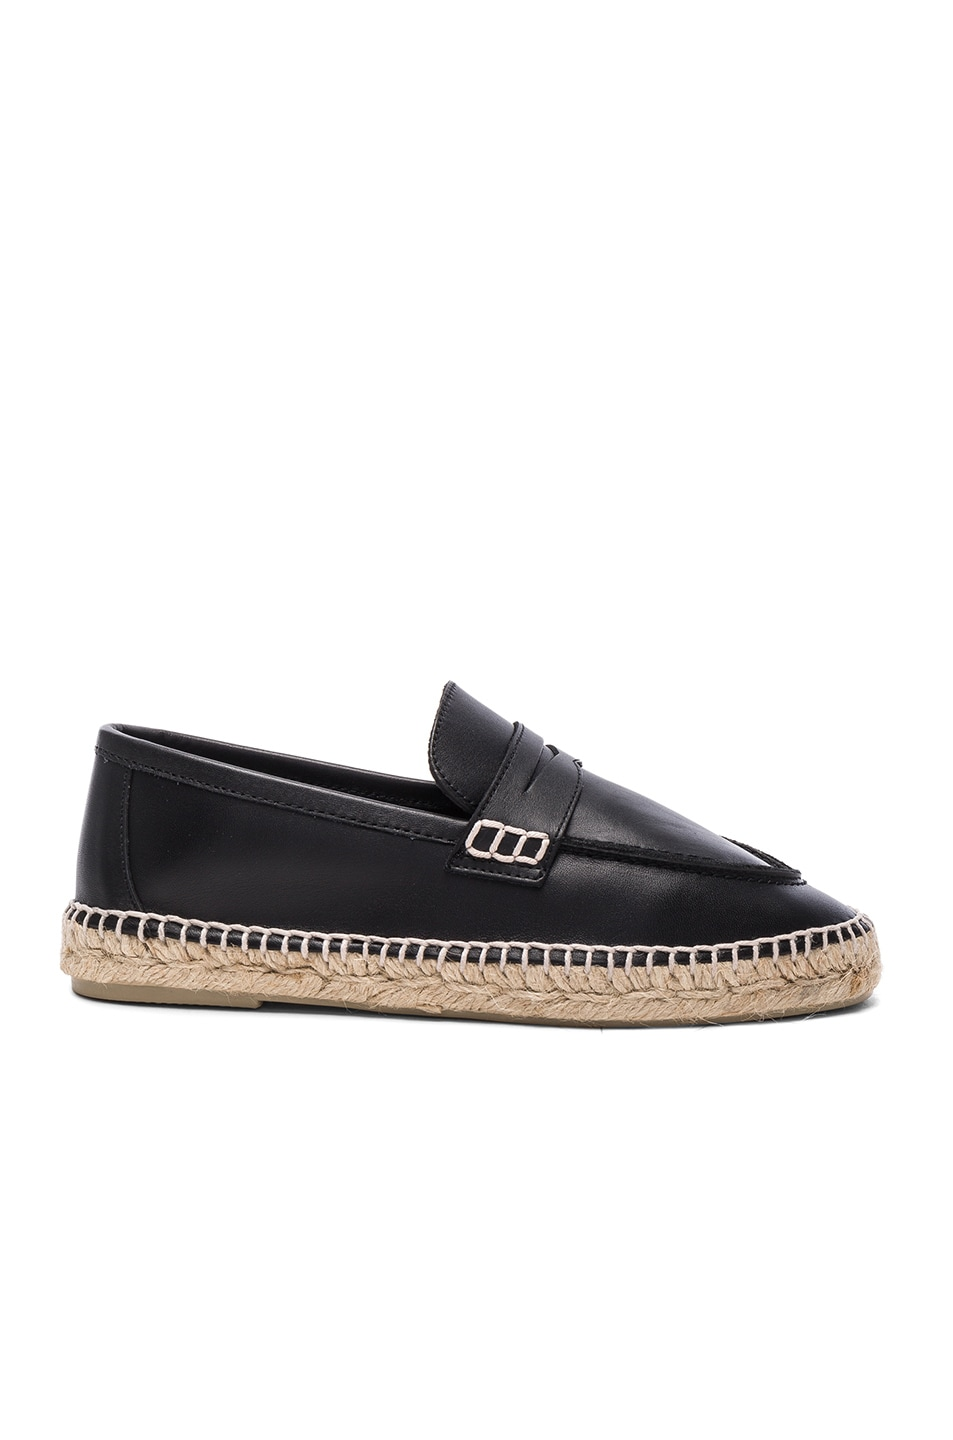 Image 1 of Loewe Leather Loafer Espadrilles in Black